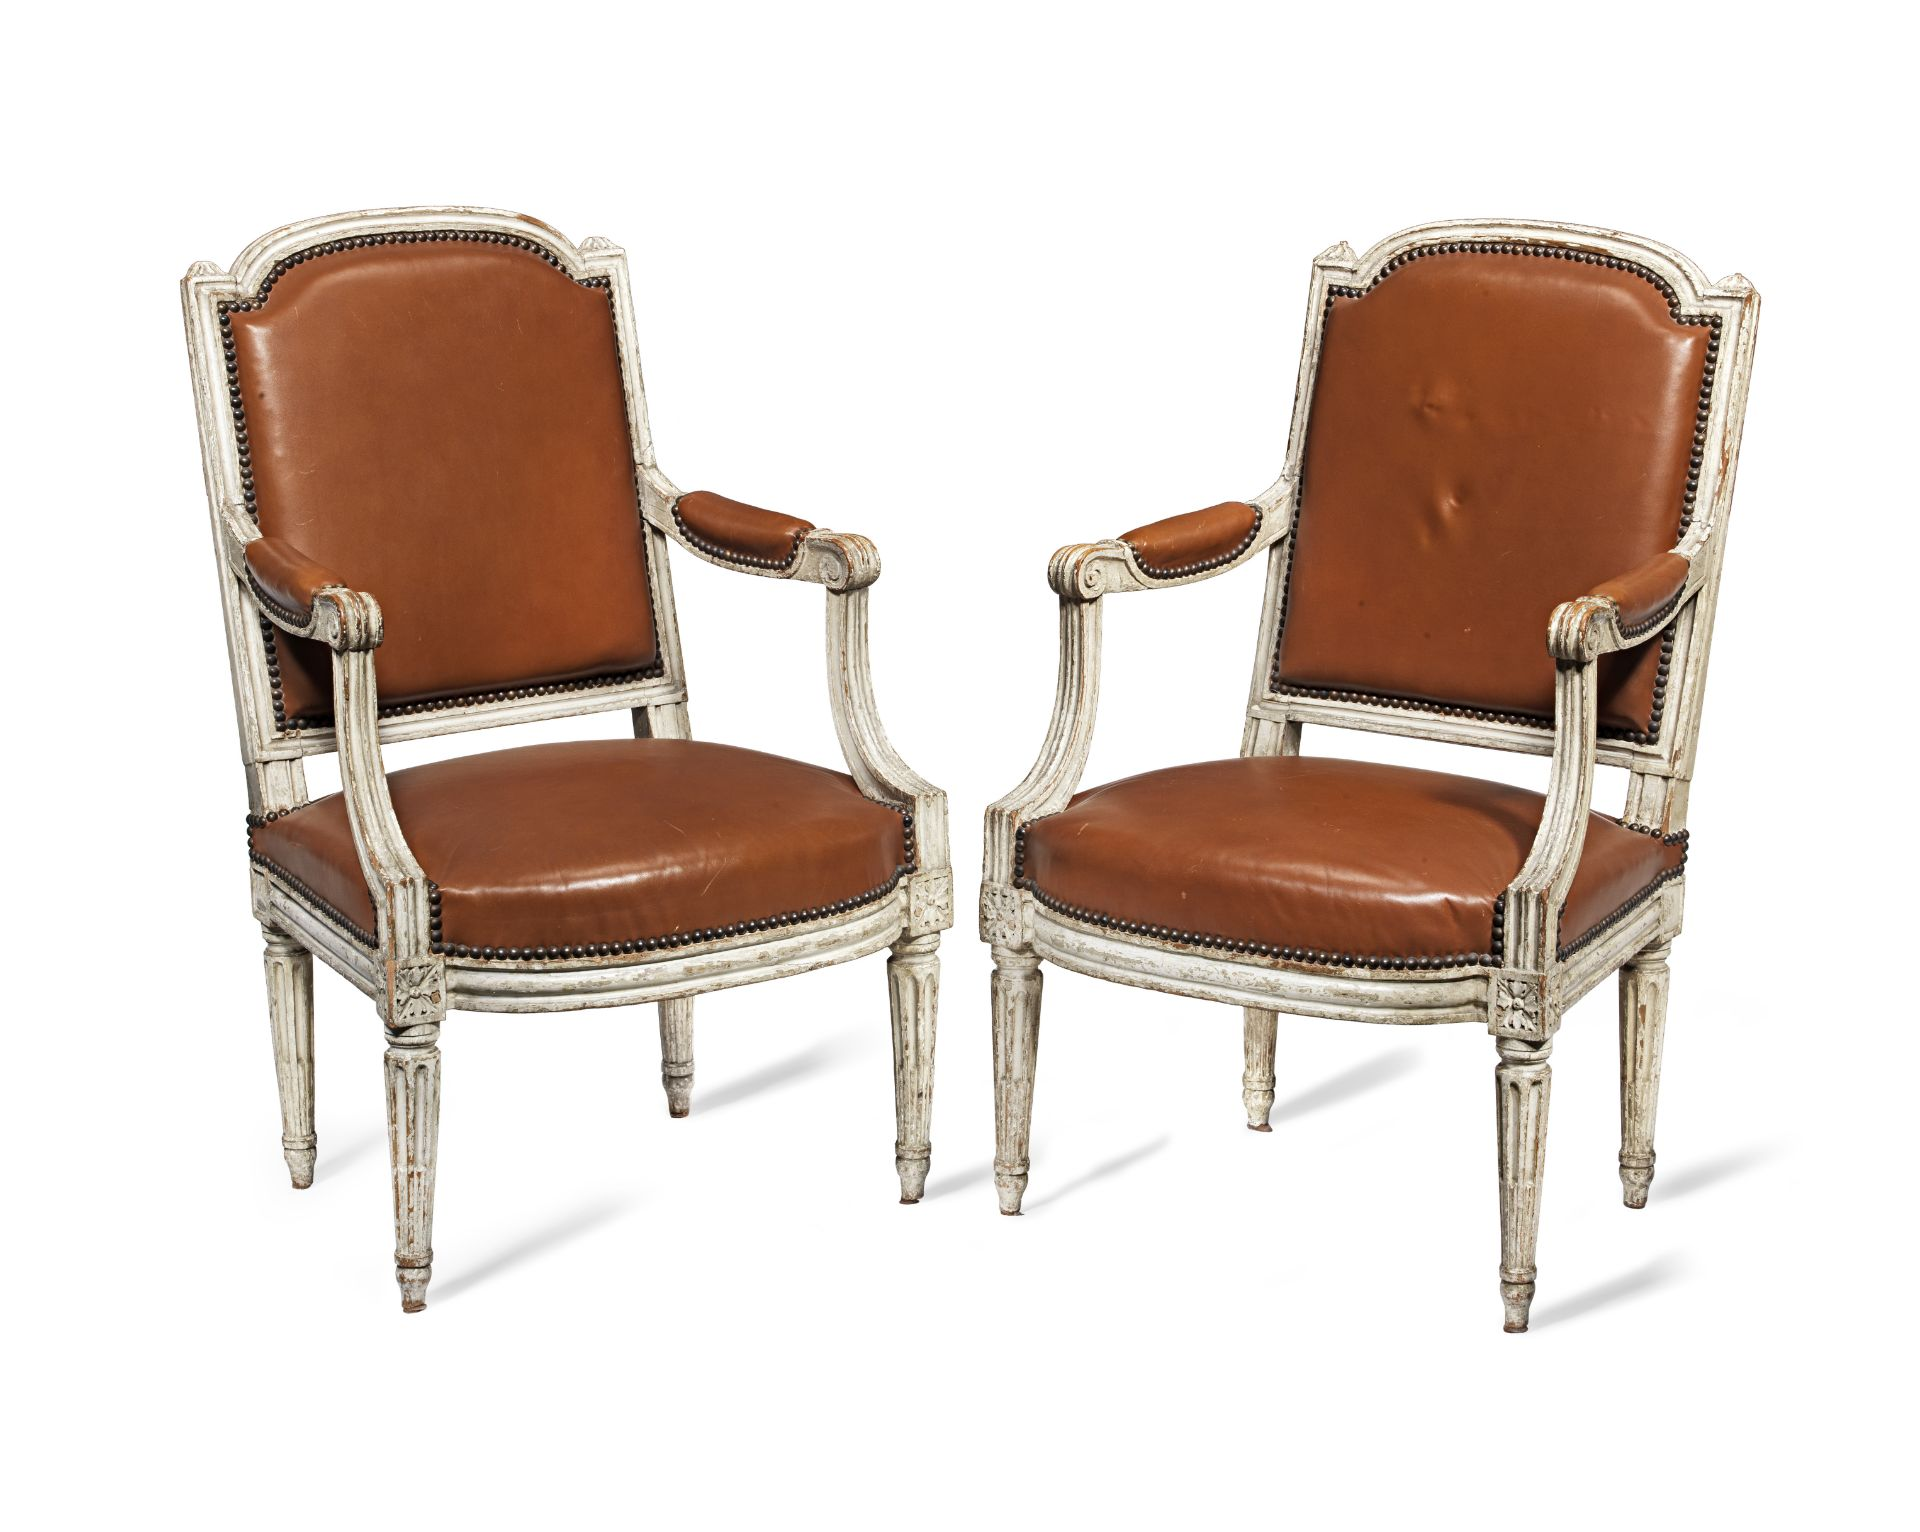 Los 111 - A pair of Louis XVI painted fauteuils (2)